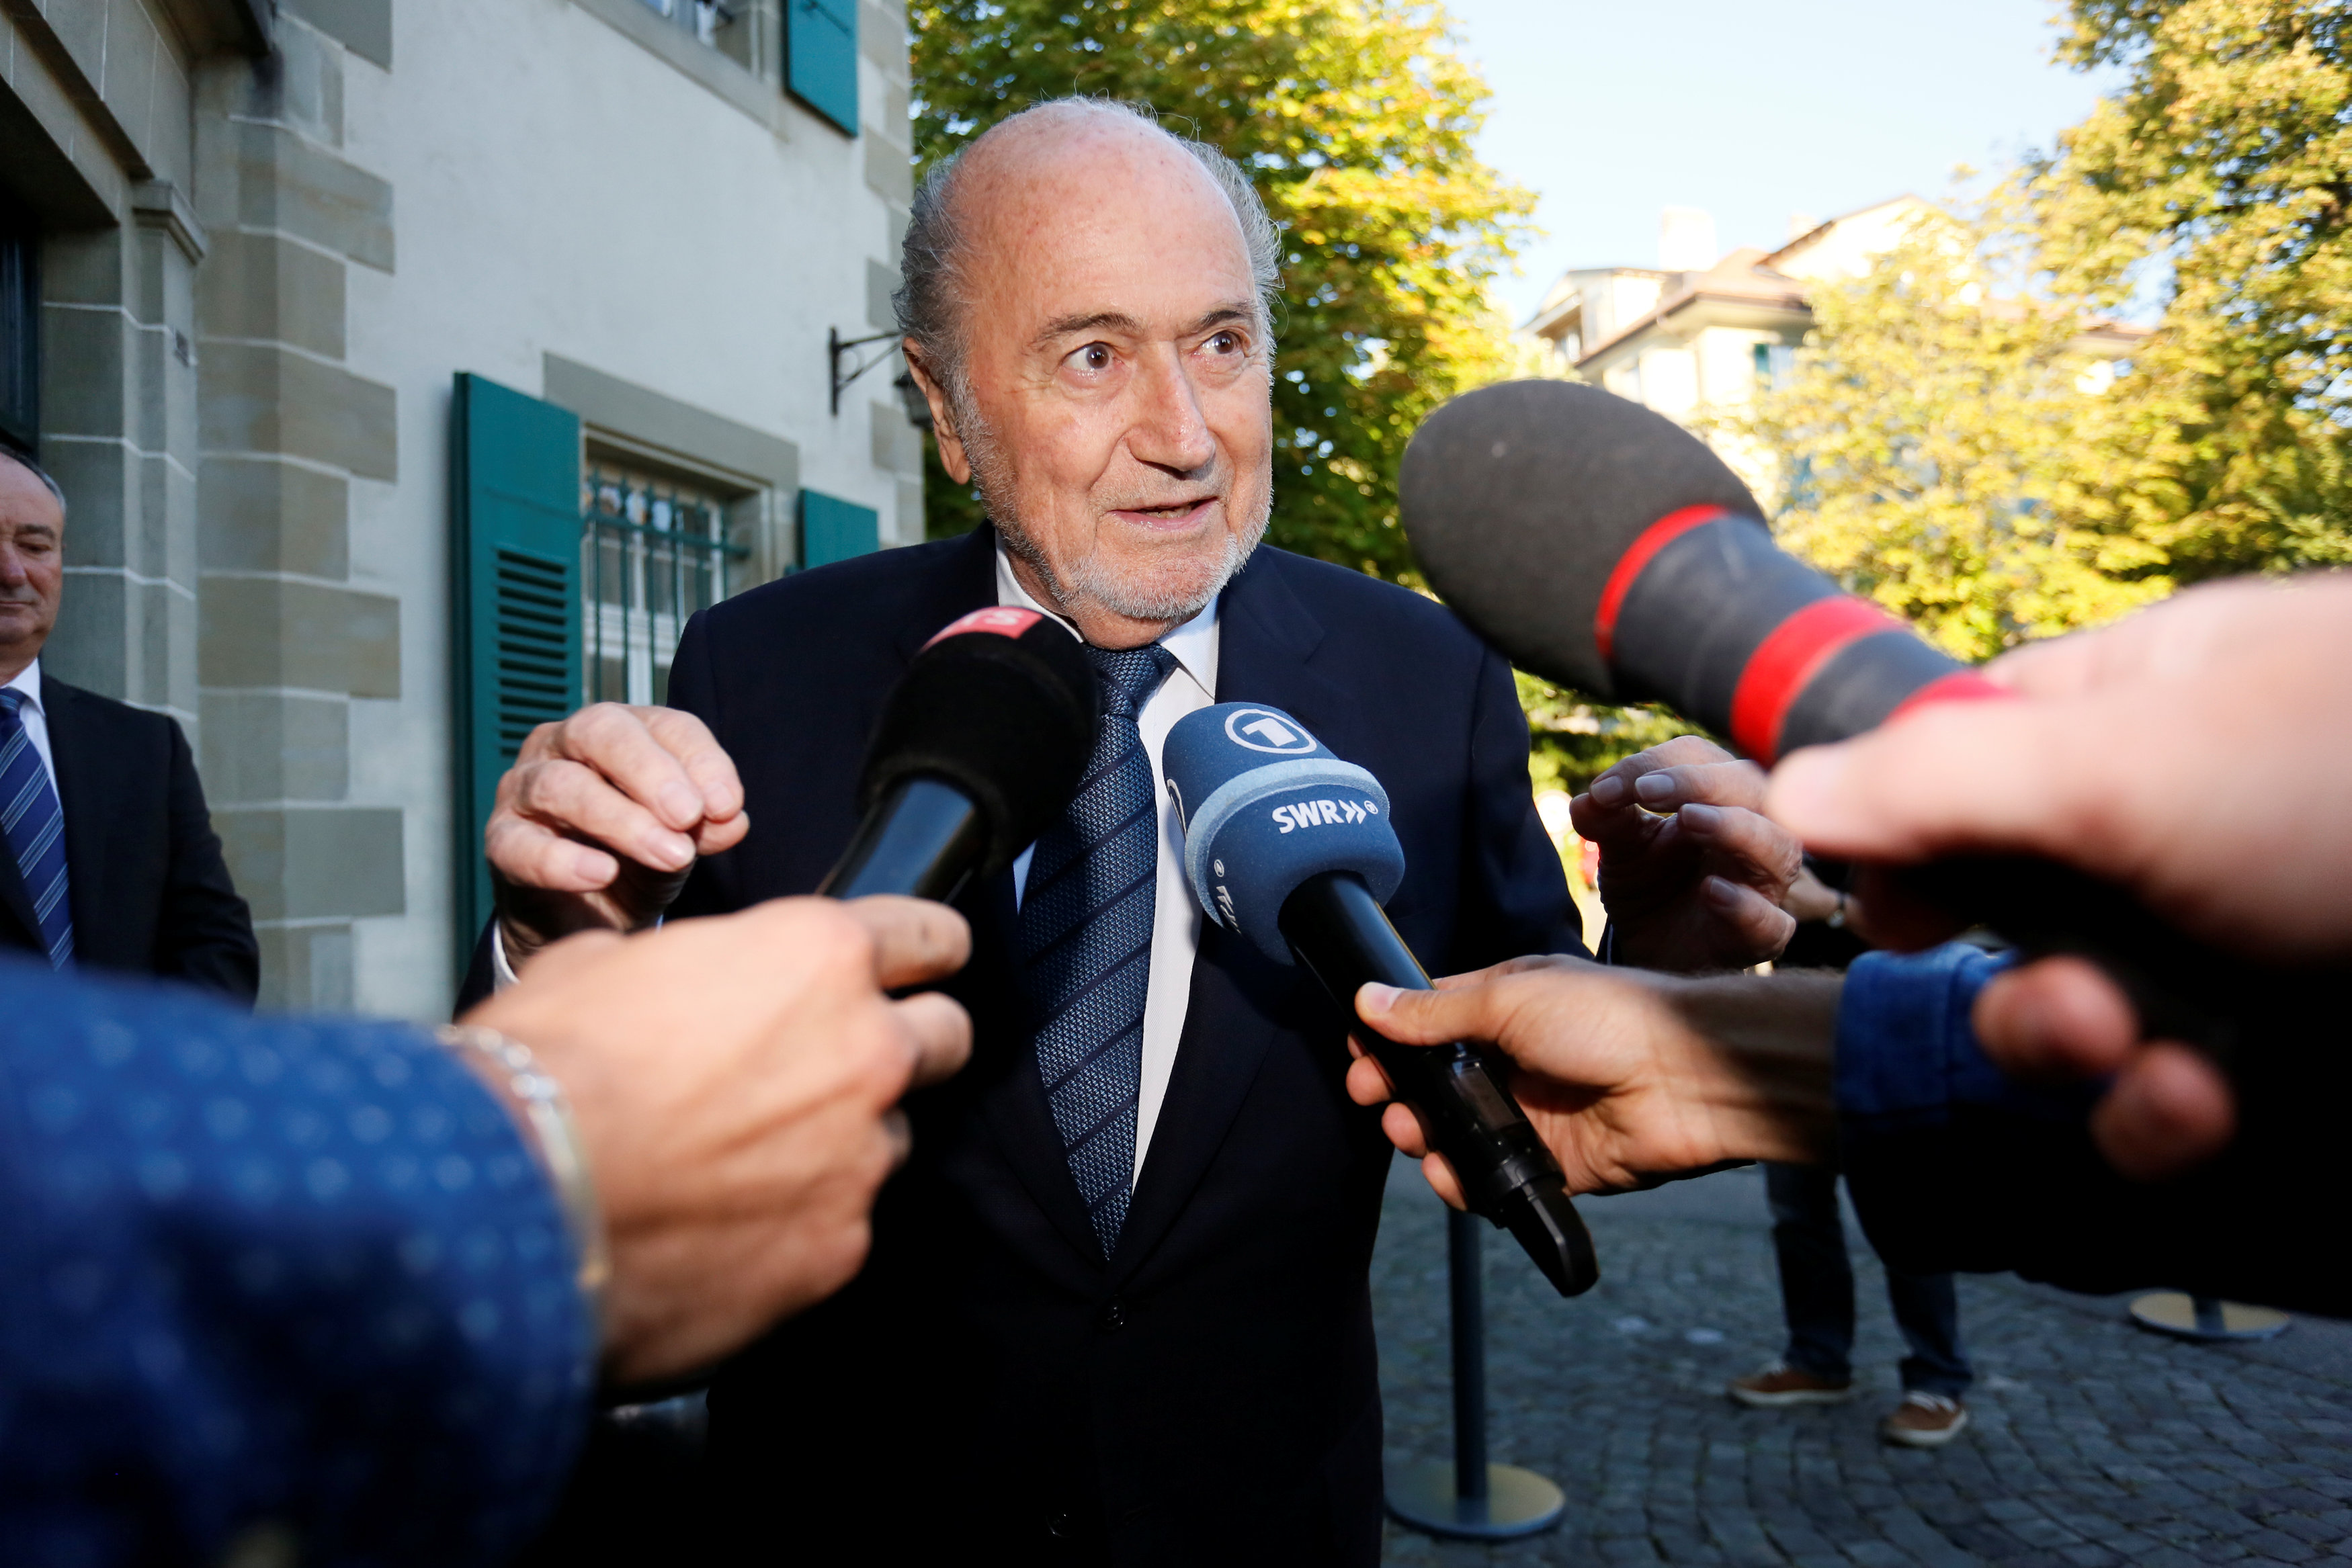 Football: Former FIFa president Blatter appears at CAS for appeal against ban